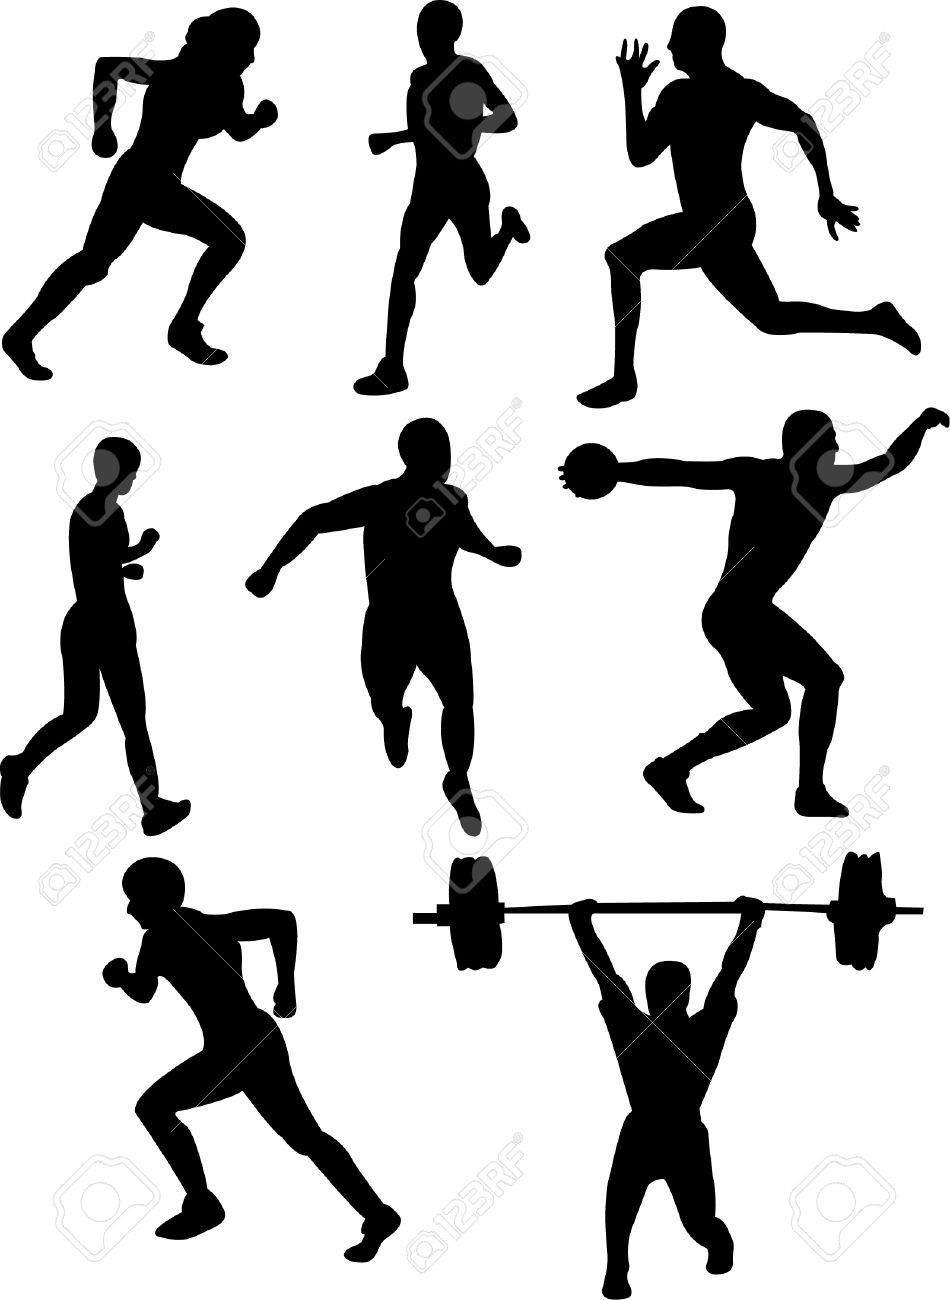 athlete silhouette vector - Google Search | ::Things ...